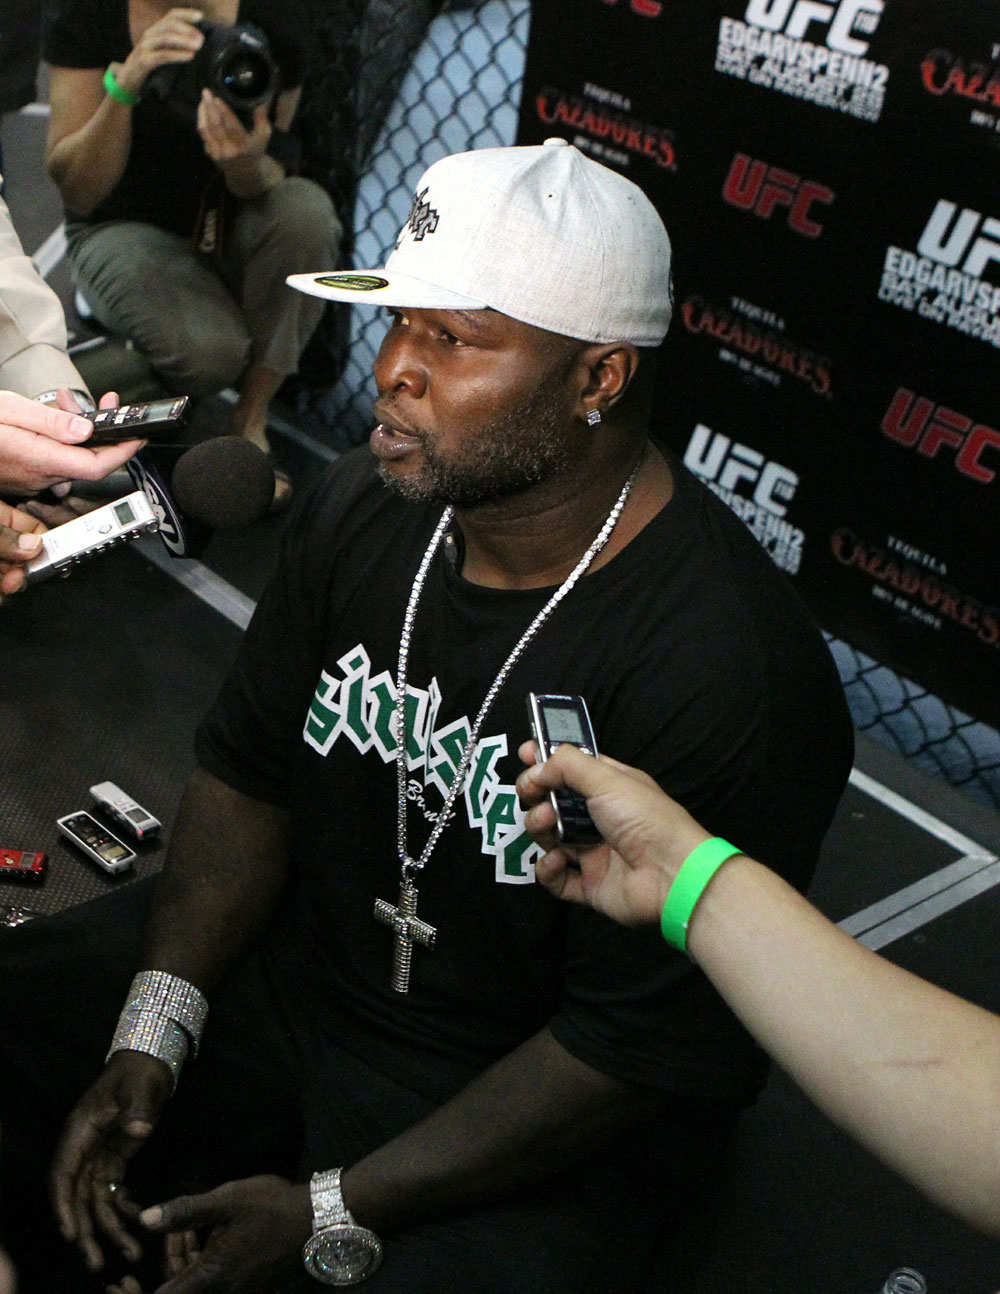 UFC118: Aug. 26th Boston, MA. James Toney at open workouts. (Photo by Josh Hedges/Zuffa LLC via Getty Images)